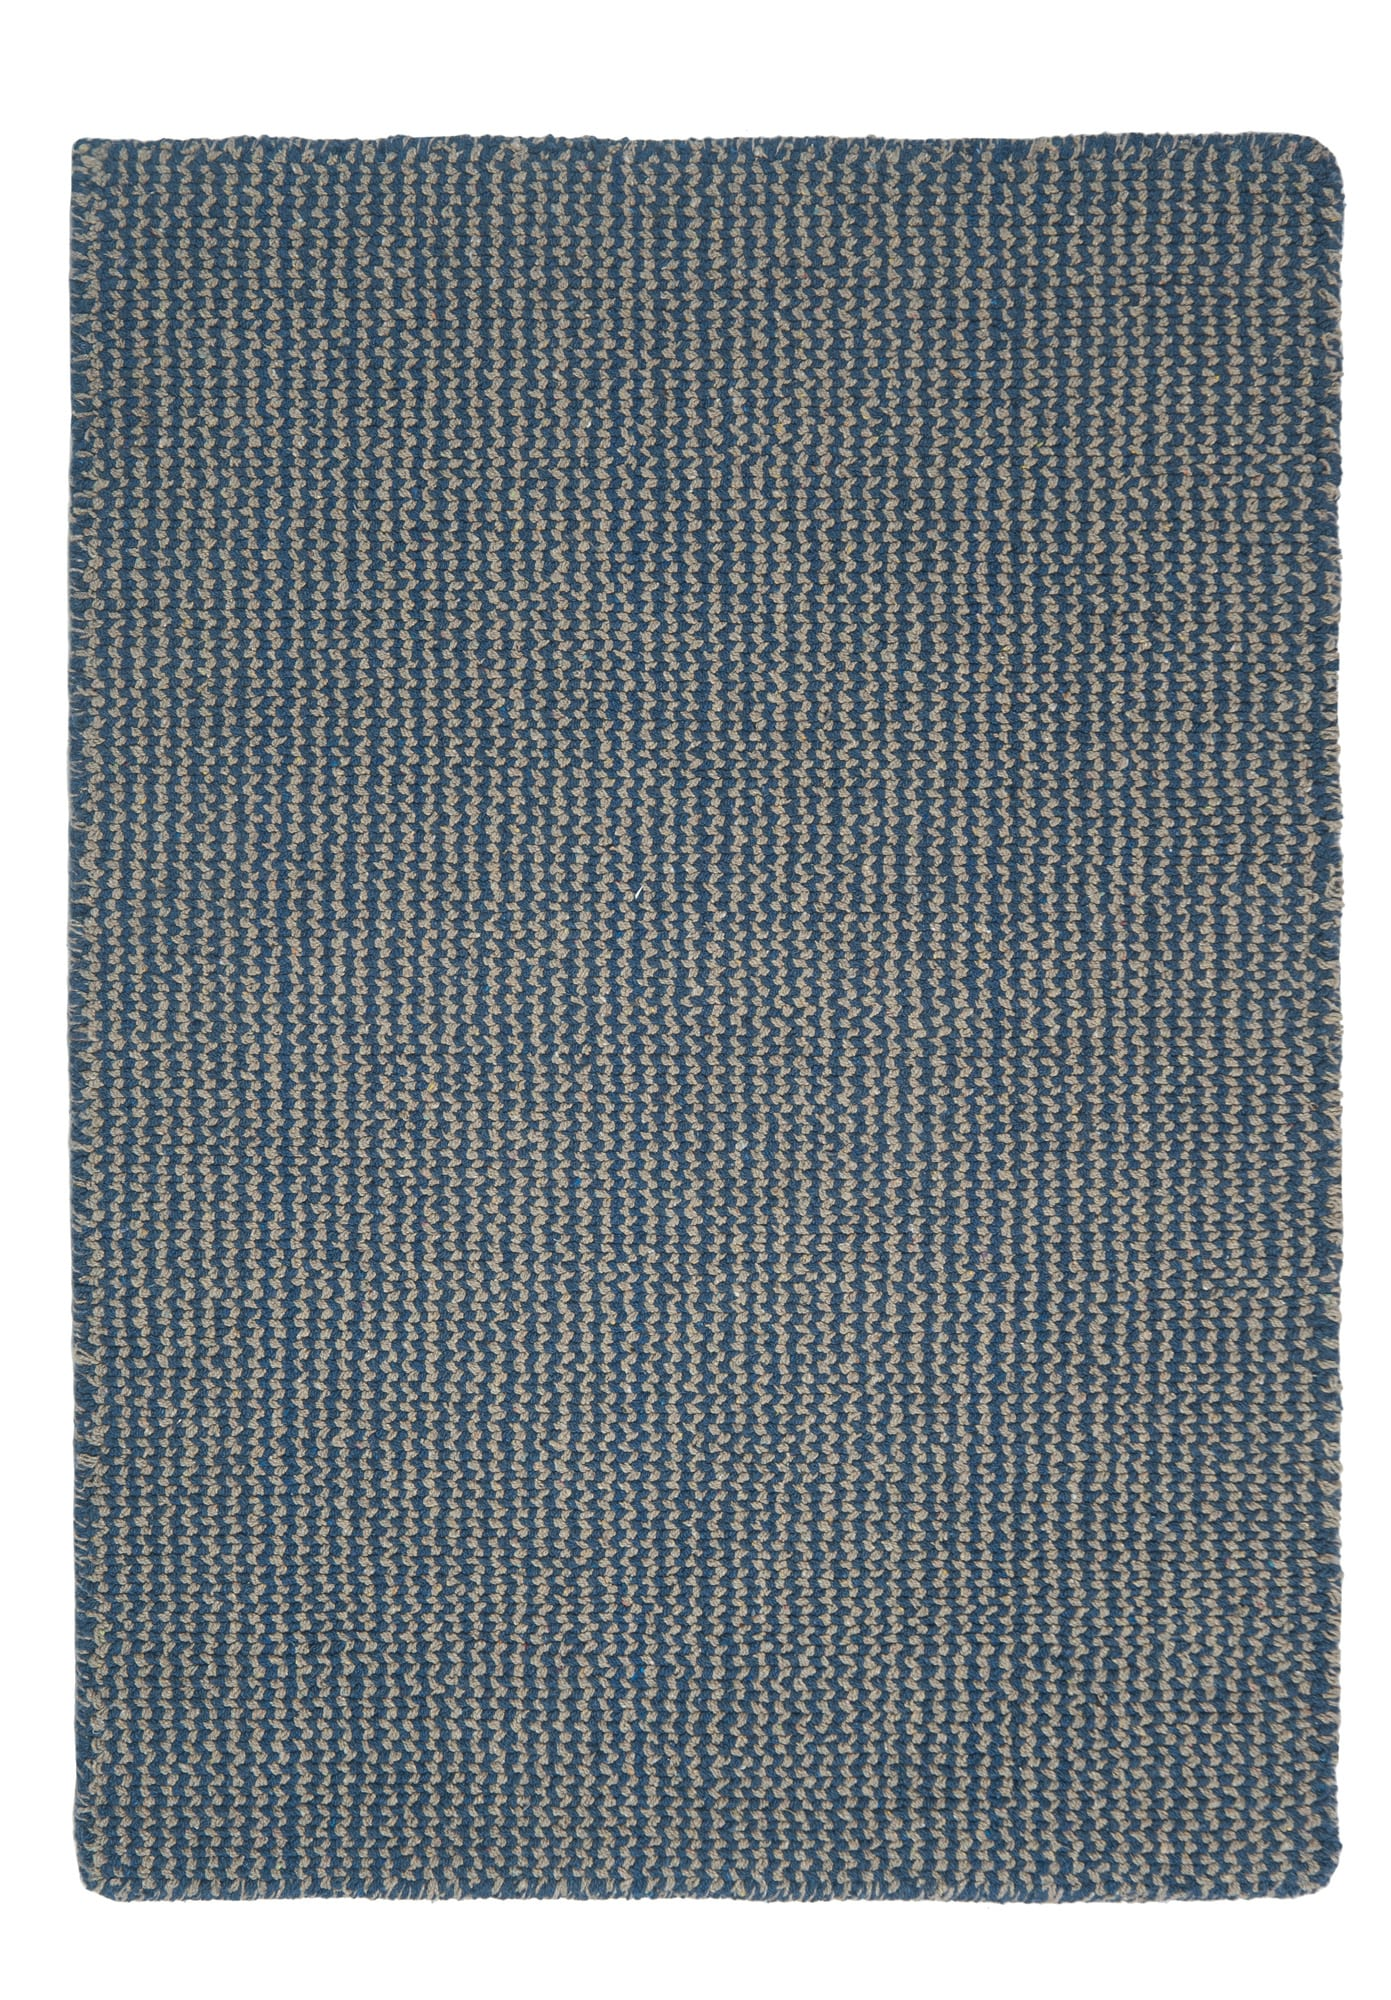 Crossweave Taupe Blue Eco Cotton Loom Hooked Rug Hook Amp Loom